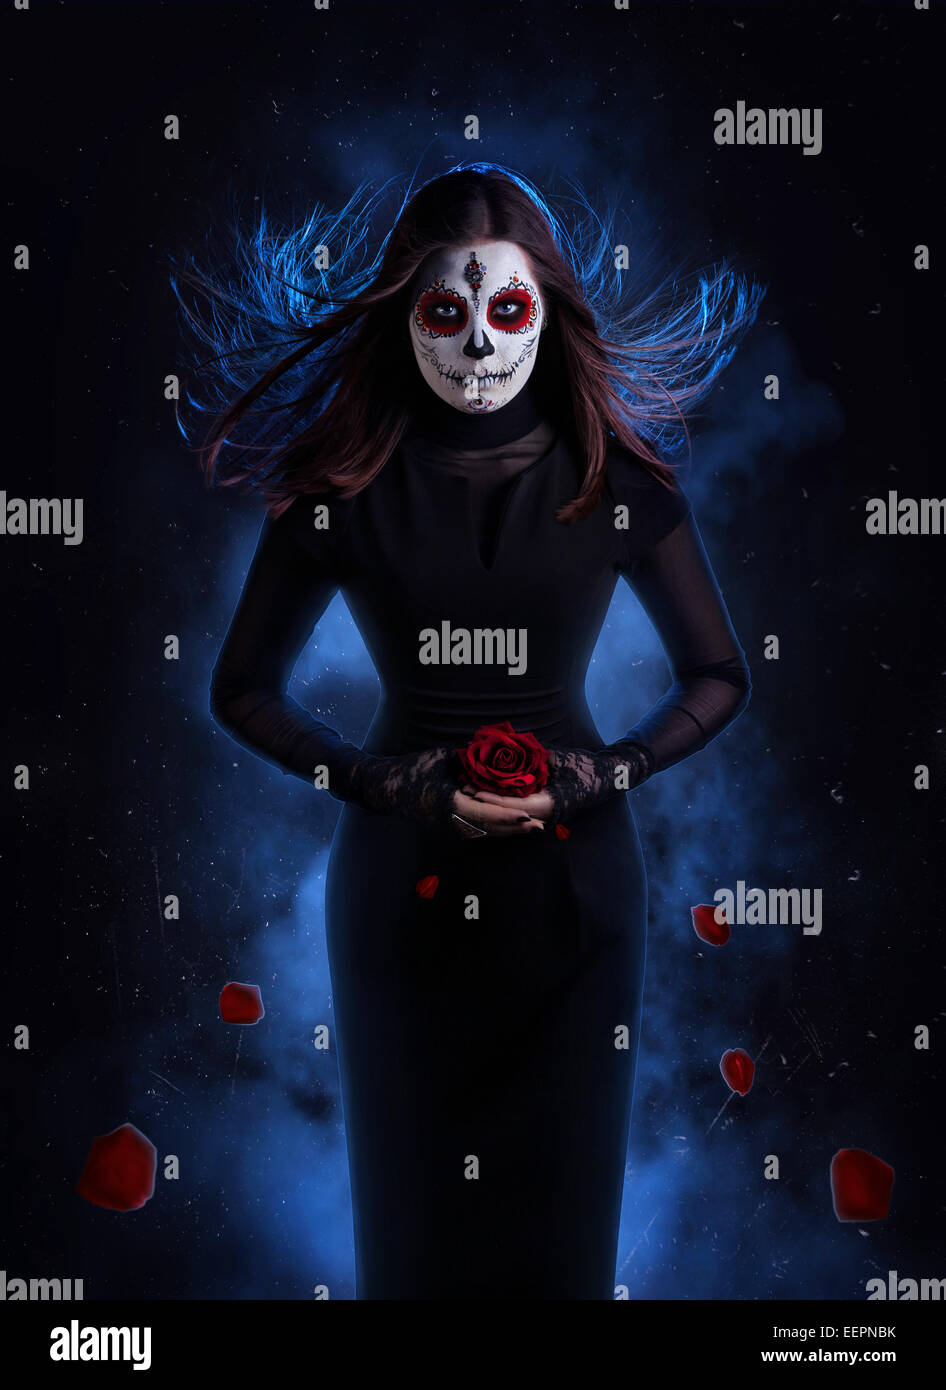 Woman in black dress with sugar skull makeup holding red rose with falling petals at dark background - Stock Image